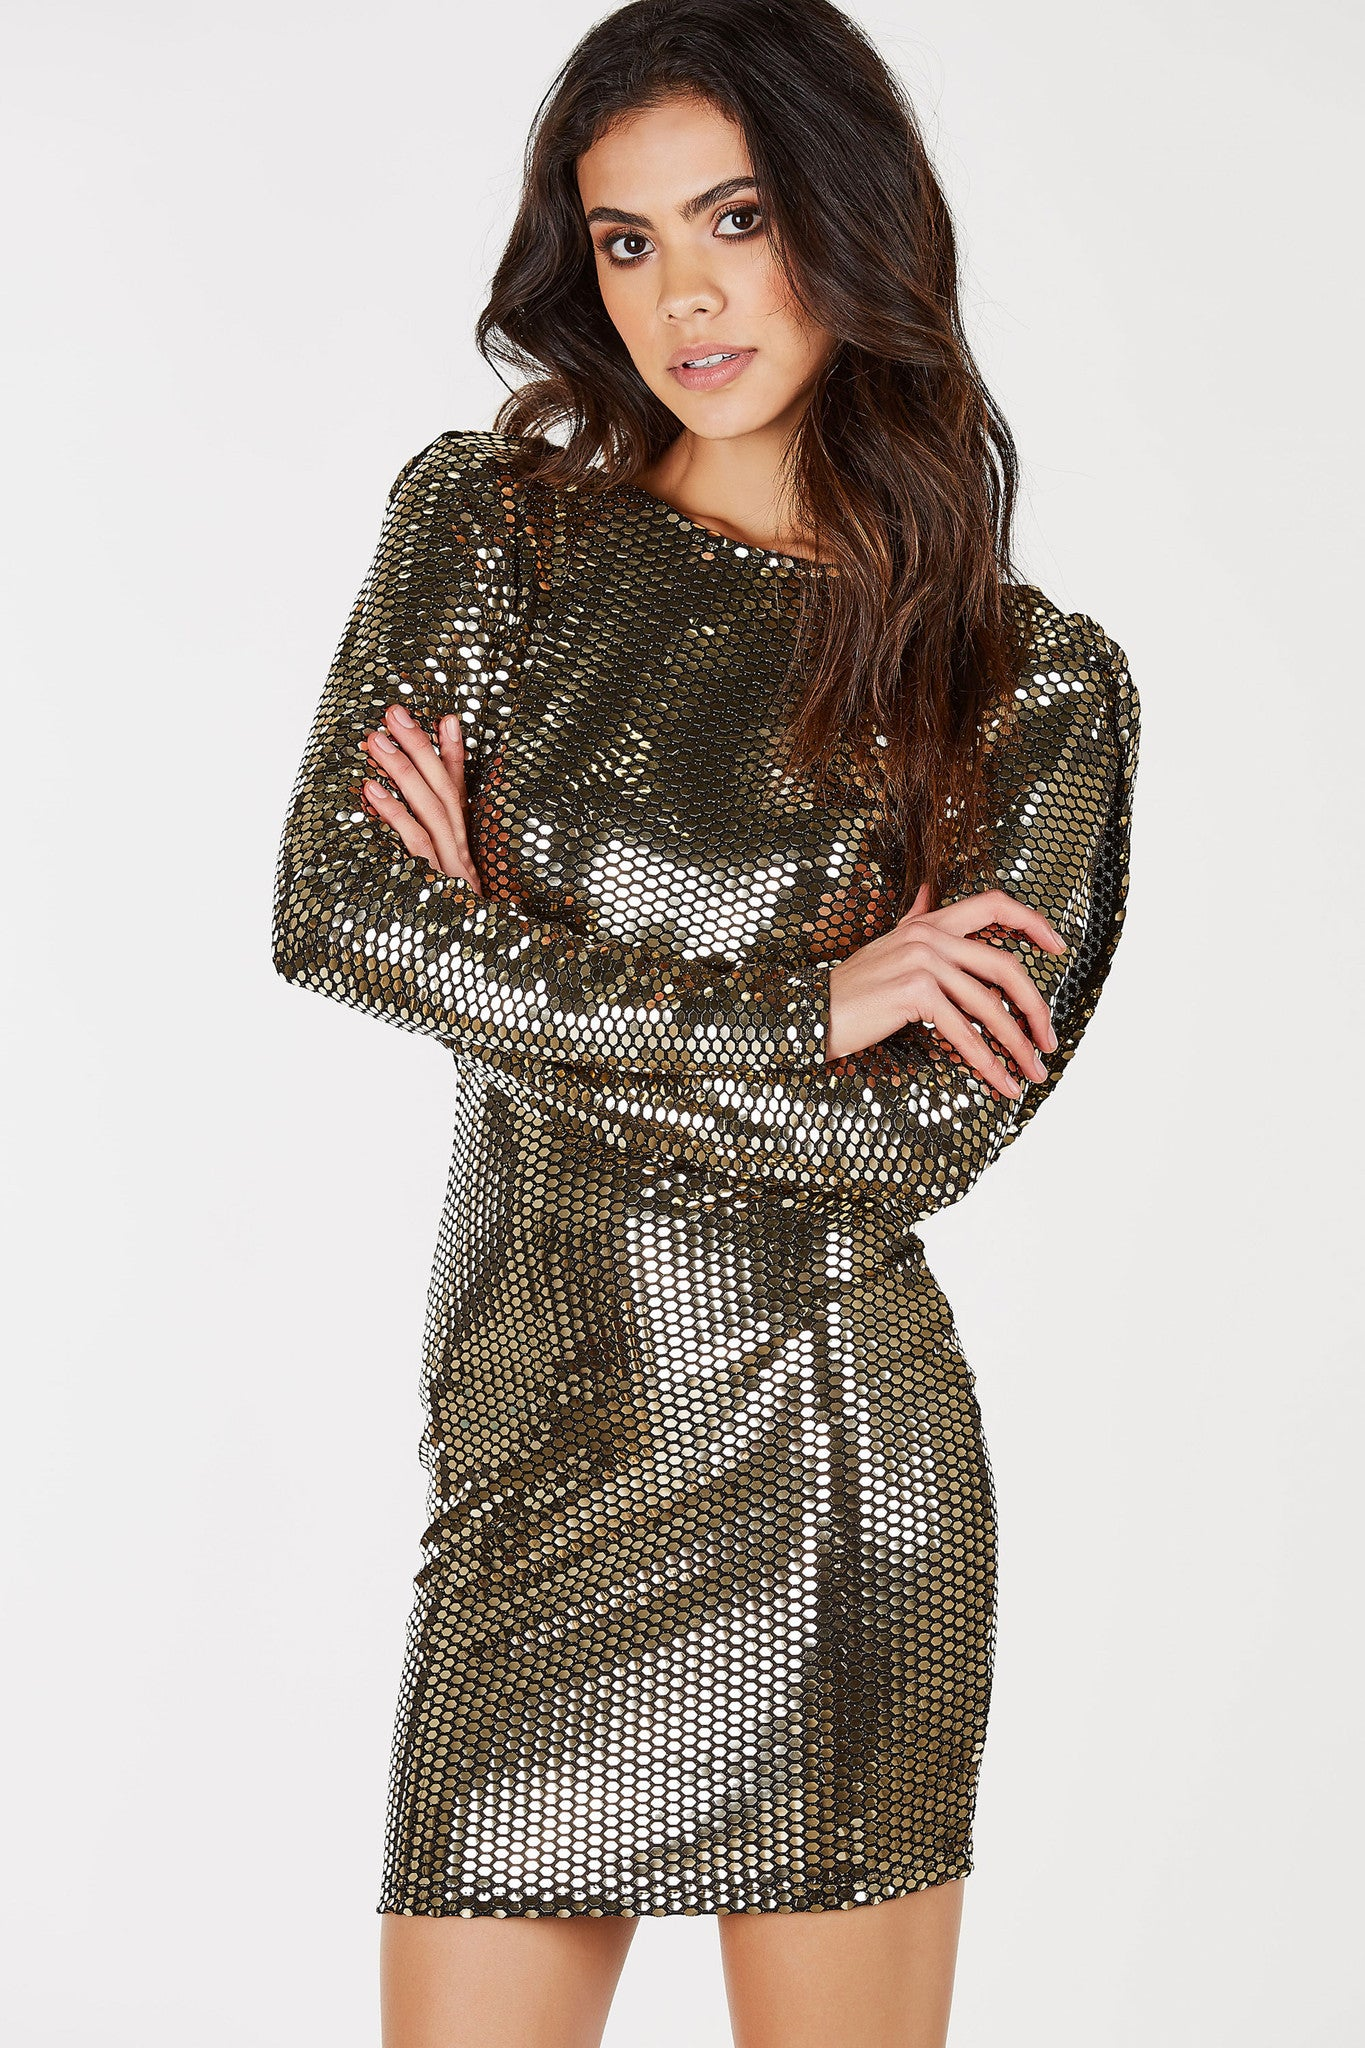 "A definite eye-catcher and conversation starter. This stunning mini dress has an amazinng sequin exterior to make you stand out in any crowd. Long sleeves with an overall flattering fit. Scooped draping back adds an extra ""wow"" factor. Great to special events and parties!"